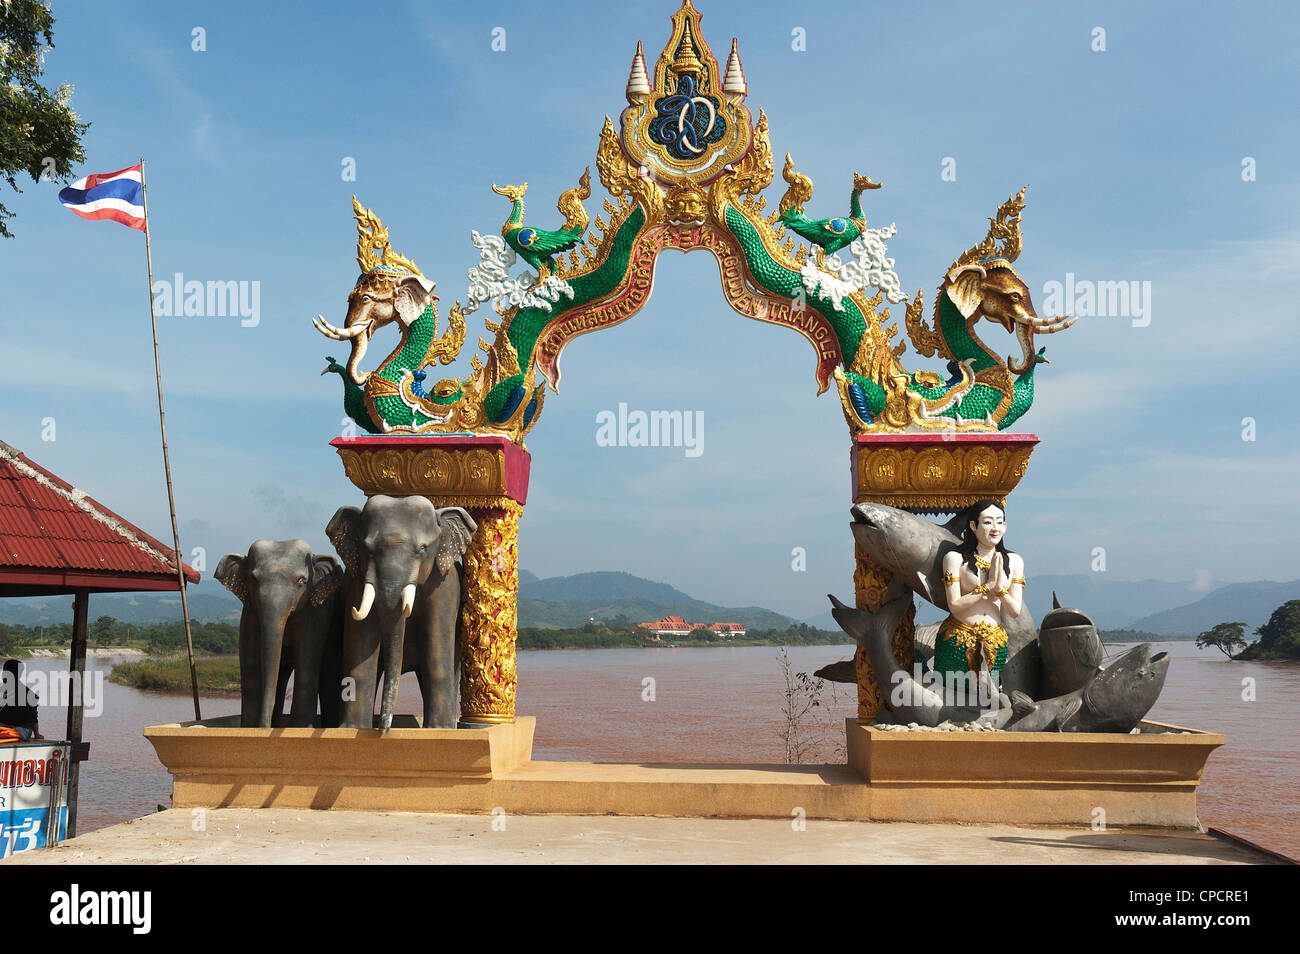 Elk208-5332 Thailand, Chiang Saen, Golden Triangle, esplanade along Mekong River with view arch - Stock Image